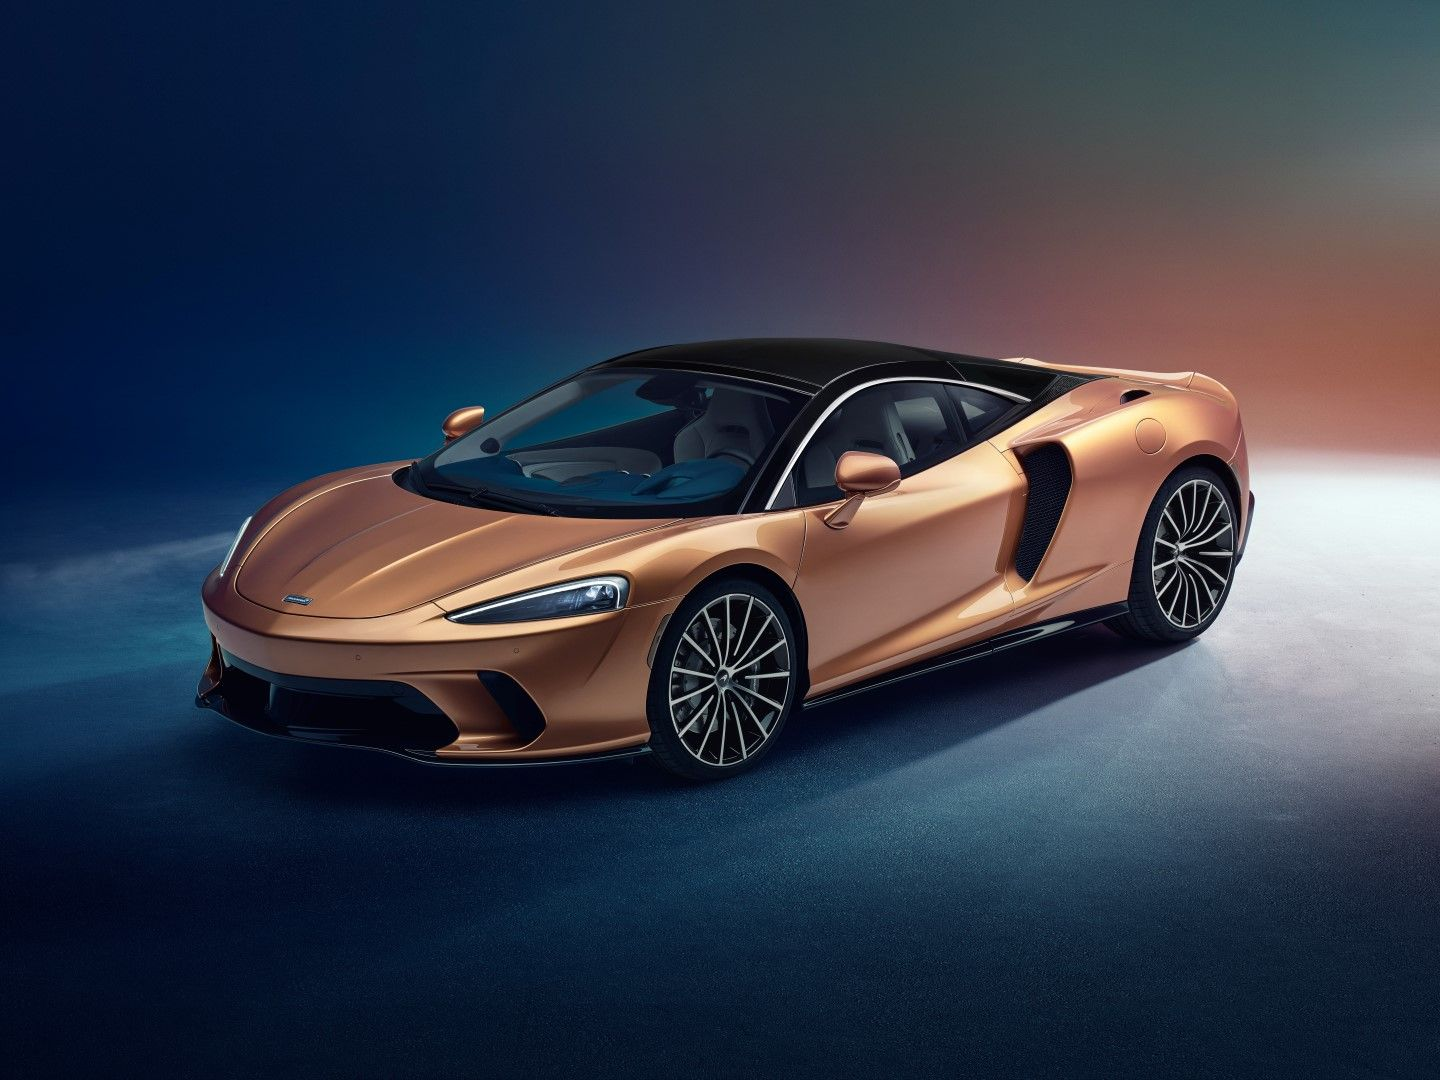 Luxury Cars As Well As Super Cars Brands That Start With M Take A Look At Our Super Car Articles Arran Sports Cars Lamborghini Sports Cars Luxury Sports Car